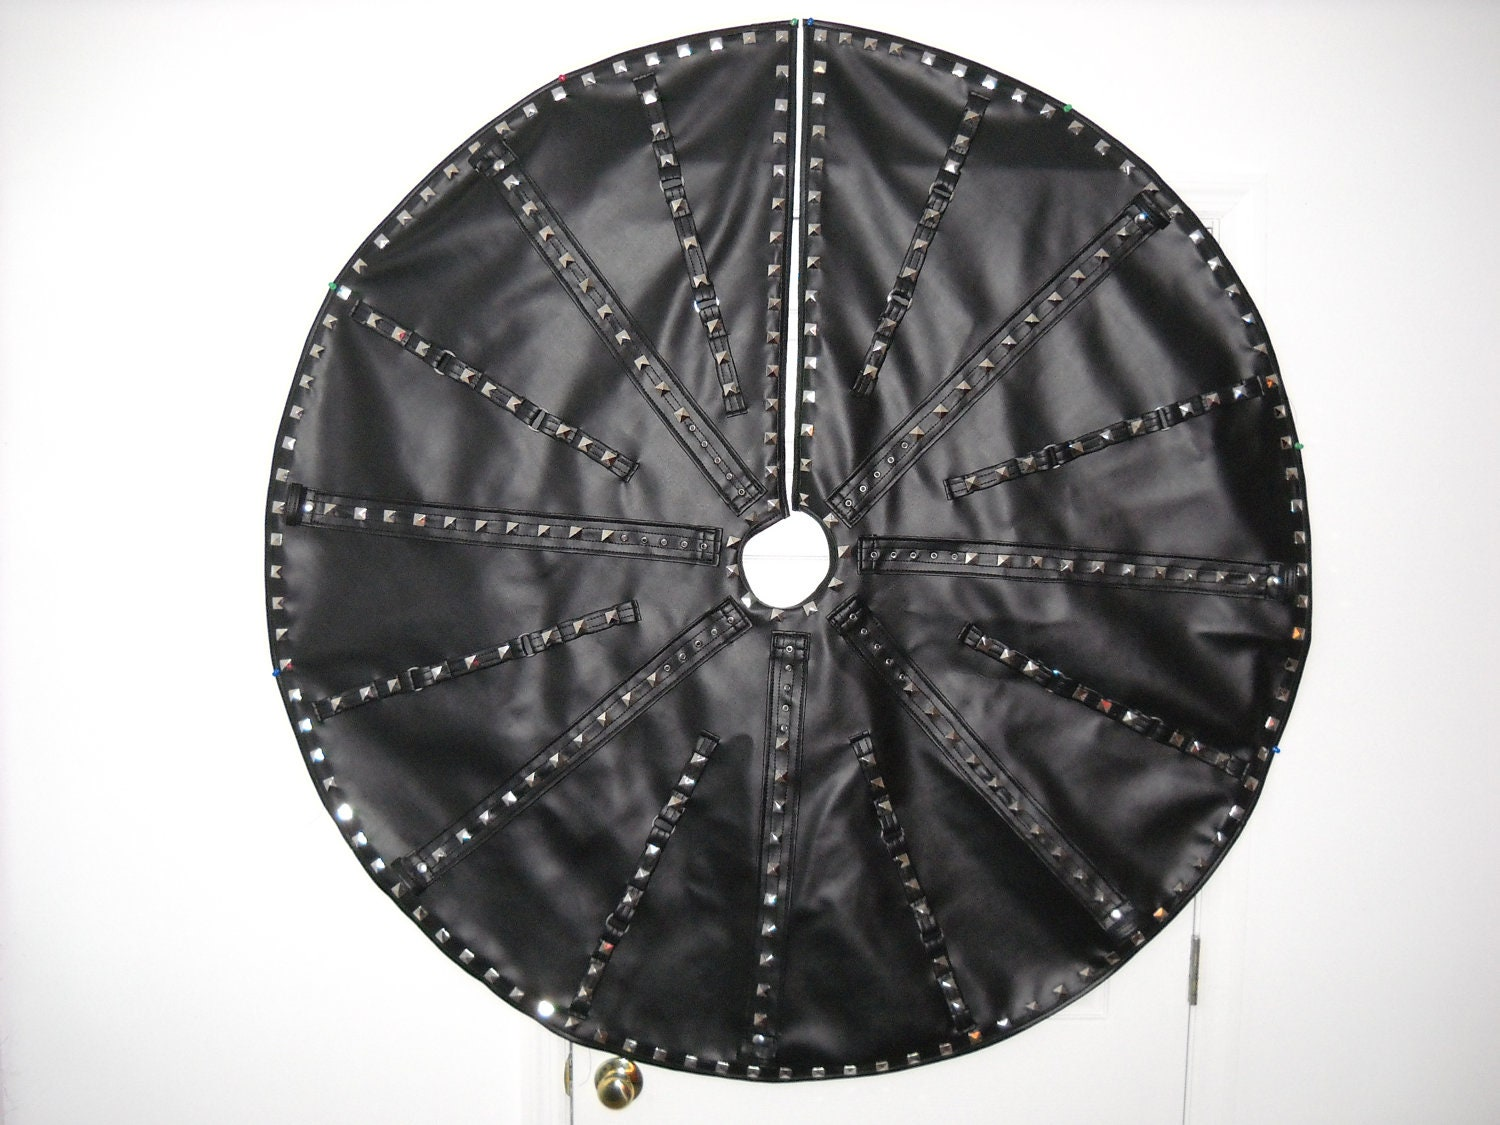 Harlequin delight black christmas tree skirt with metal studs